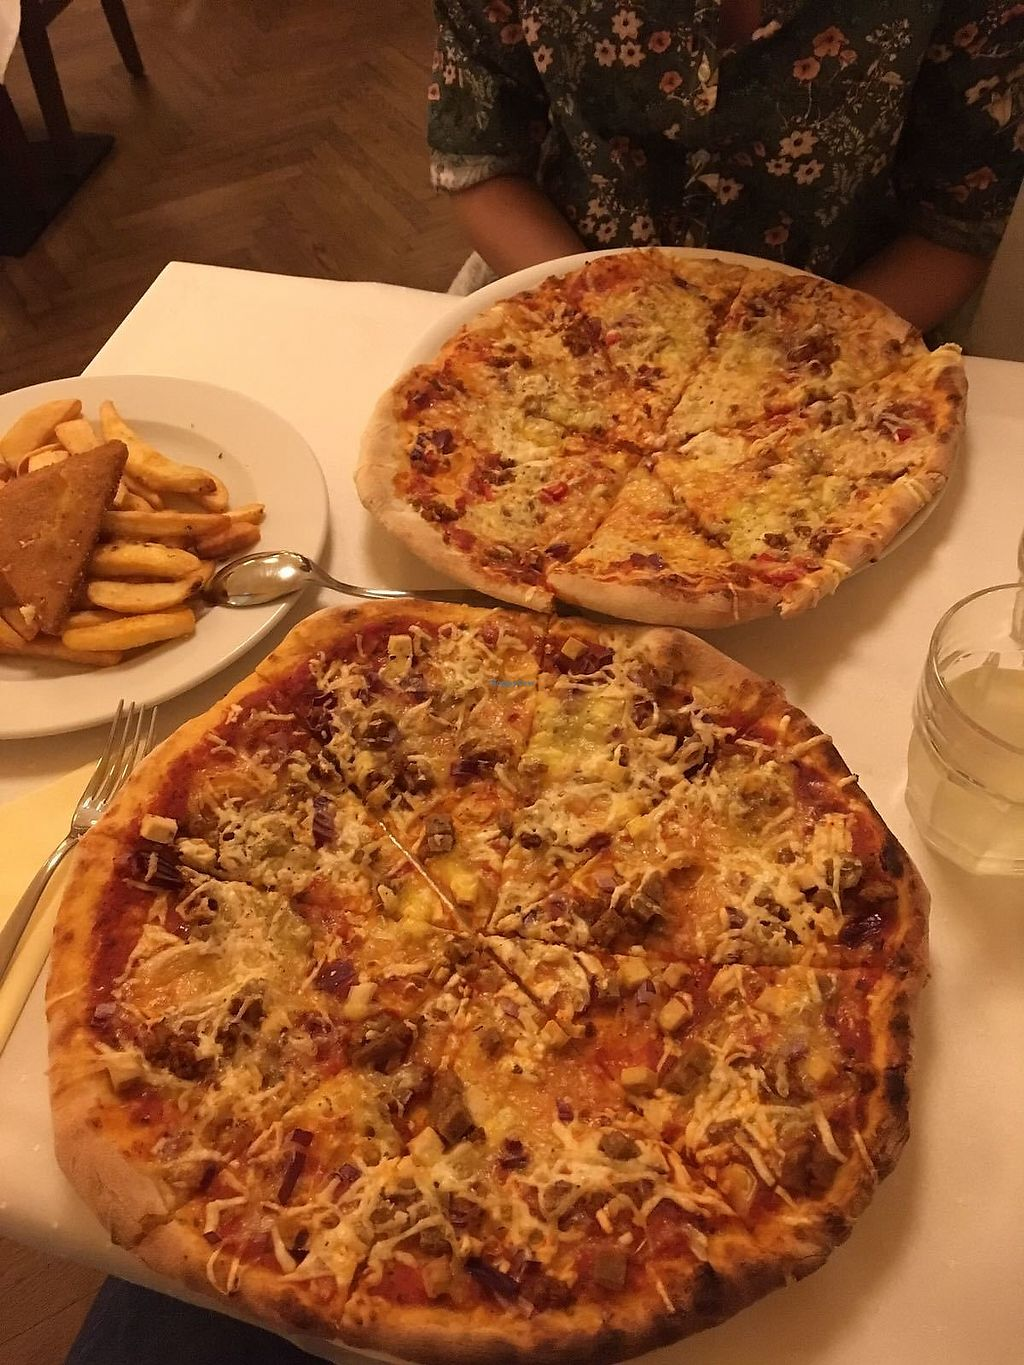 """Photo of Napfenyes Restaurant and Pastry Shop  by <a href=""""/members/profile/Charl295"""">Charl295</a> <br/>Pizzas, steak fries and breaded fried cheese <br/> April 12, 2018  - <a href='/contact/abuse/image/18107/384484'>Report</a>"""